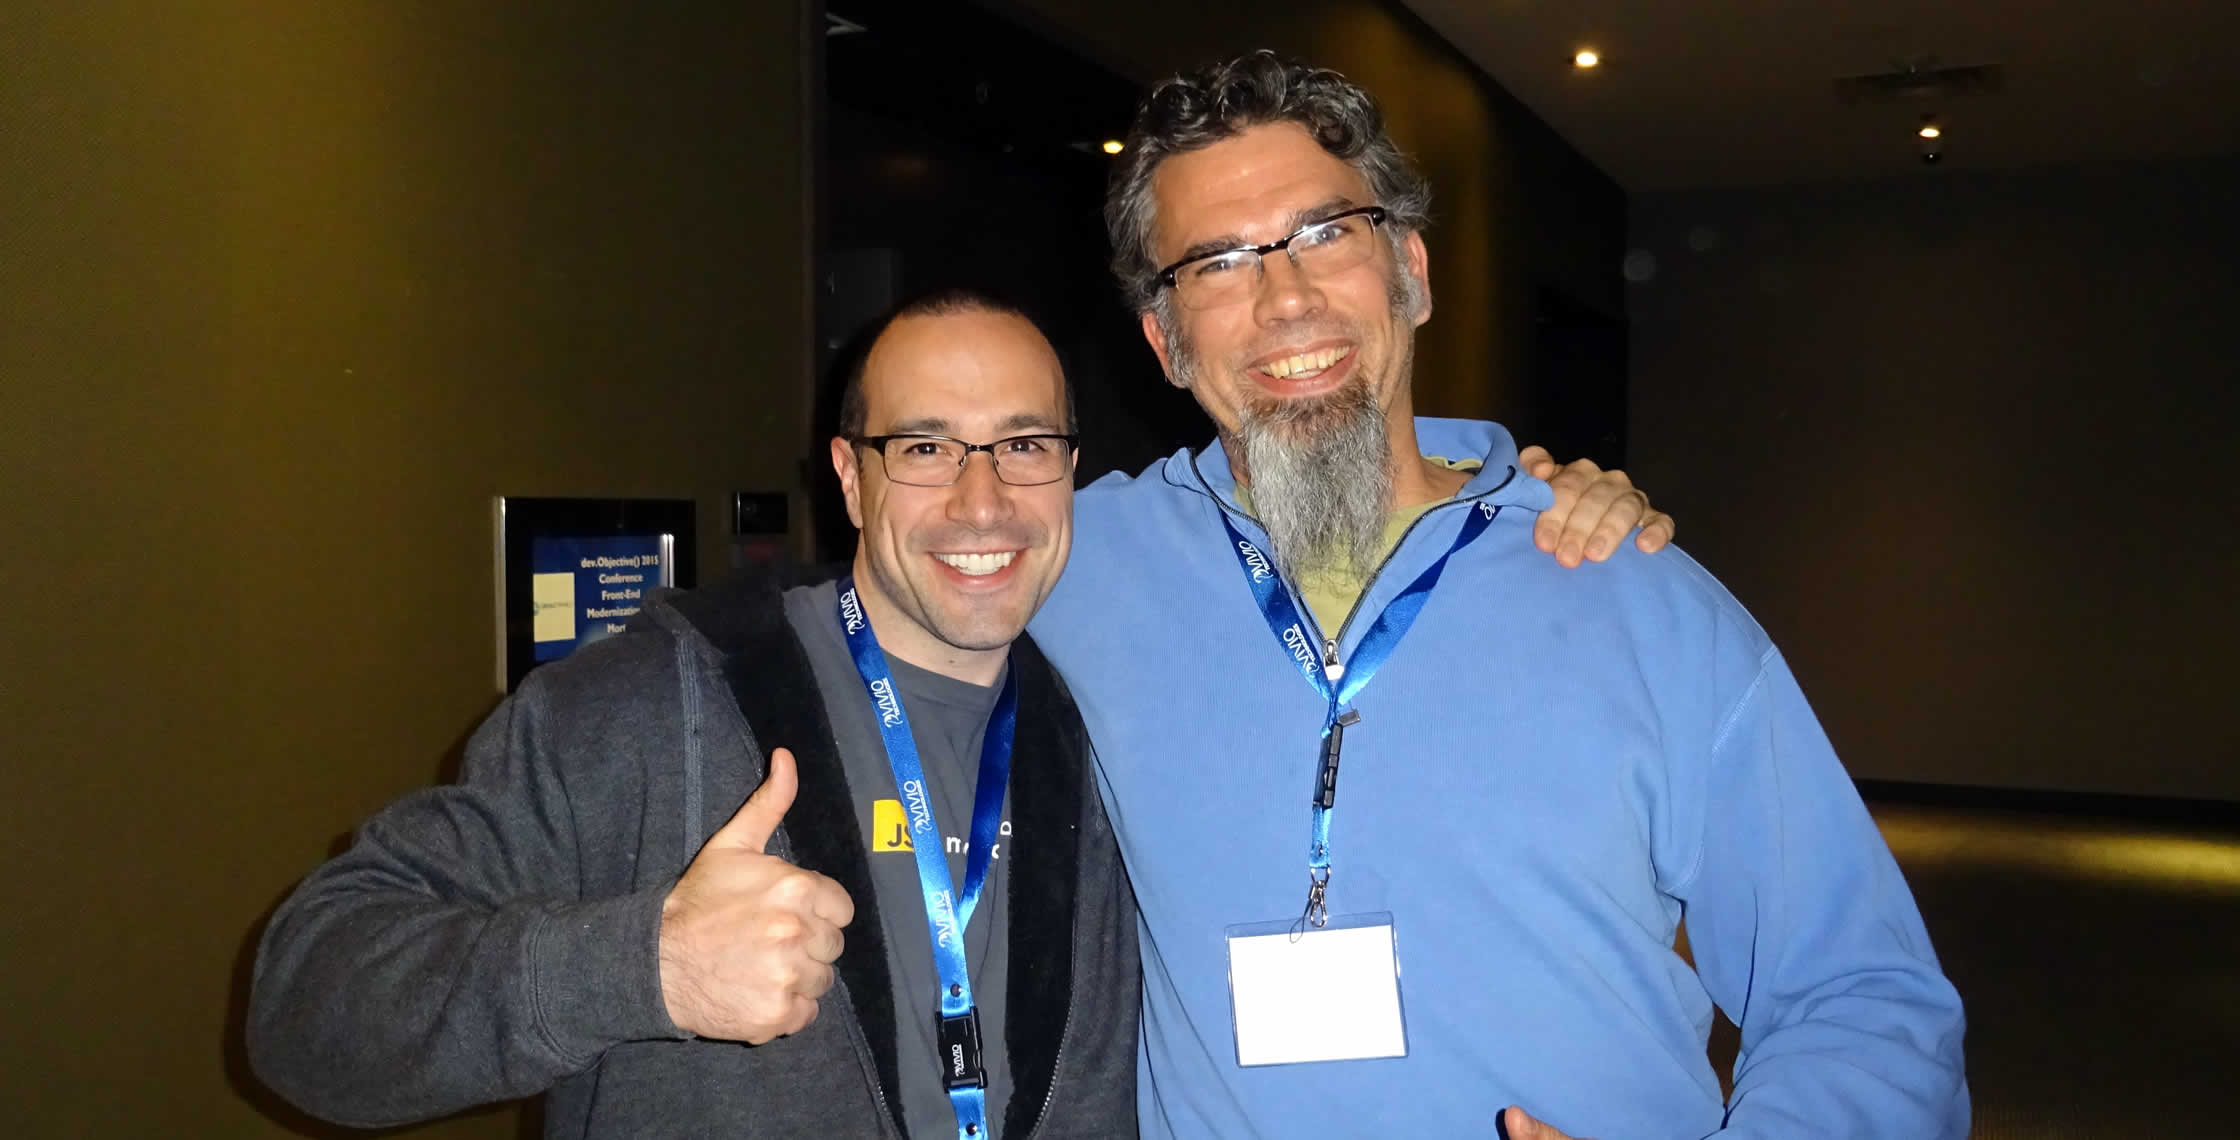 Ben Nadel at dev.Objective() 2015 (Bloomington, MN) with: Brien Hodges